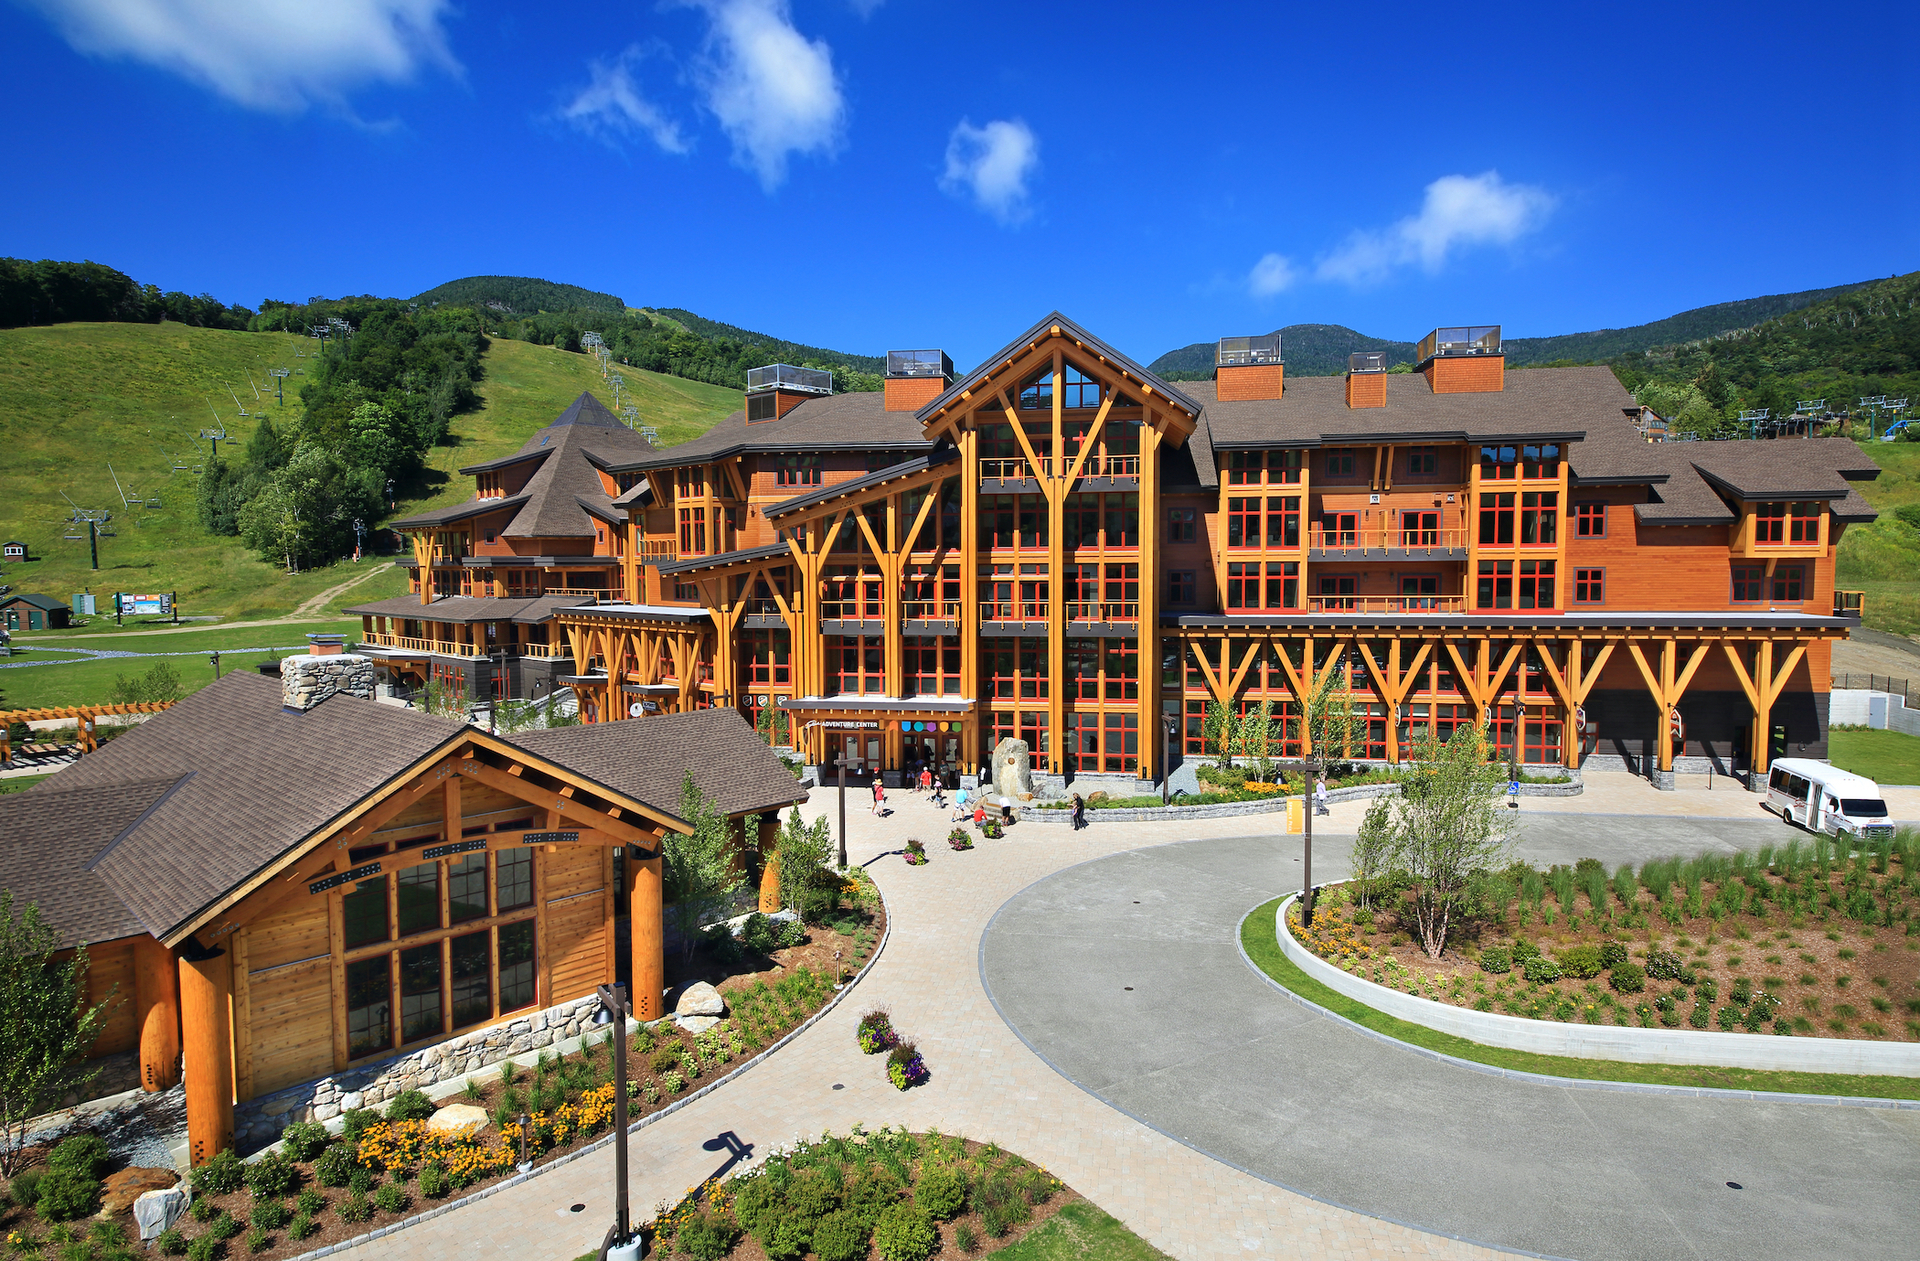 Pella's red aluminum-clad window systems blend with the design and finish of the wood exterior facade at Spruce Peak Village in Stowe, VT.